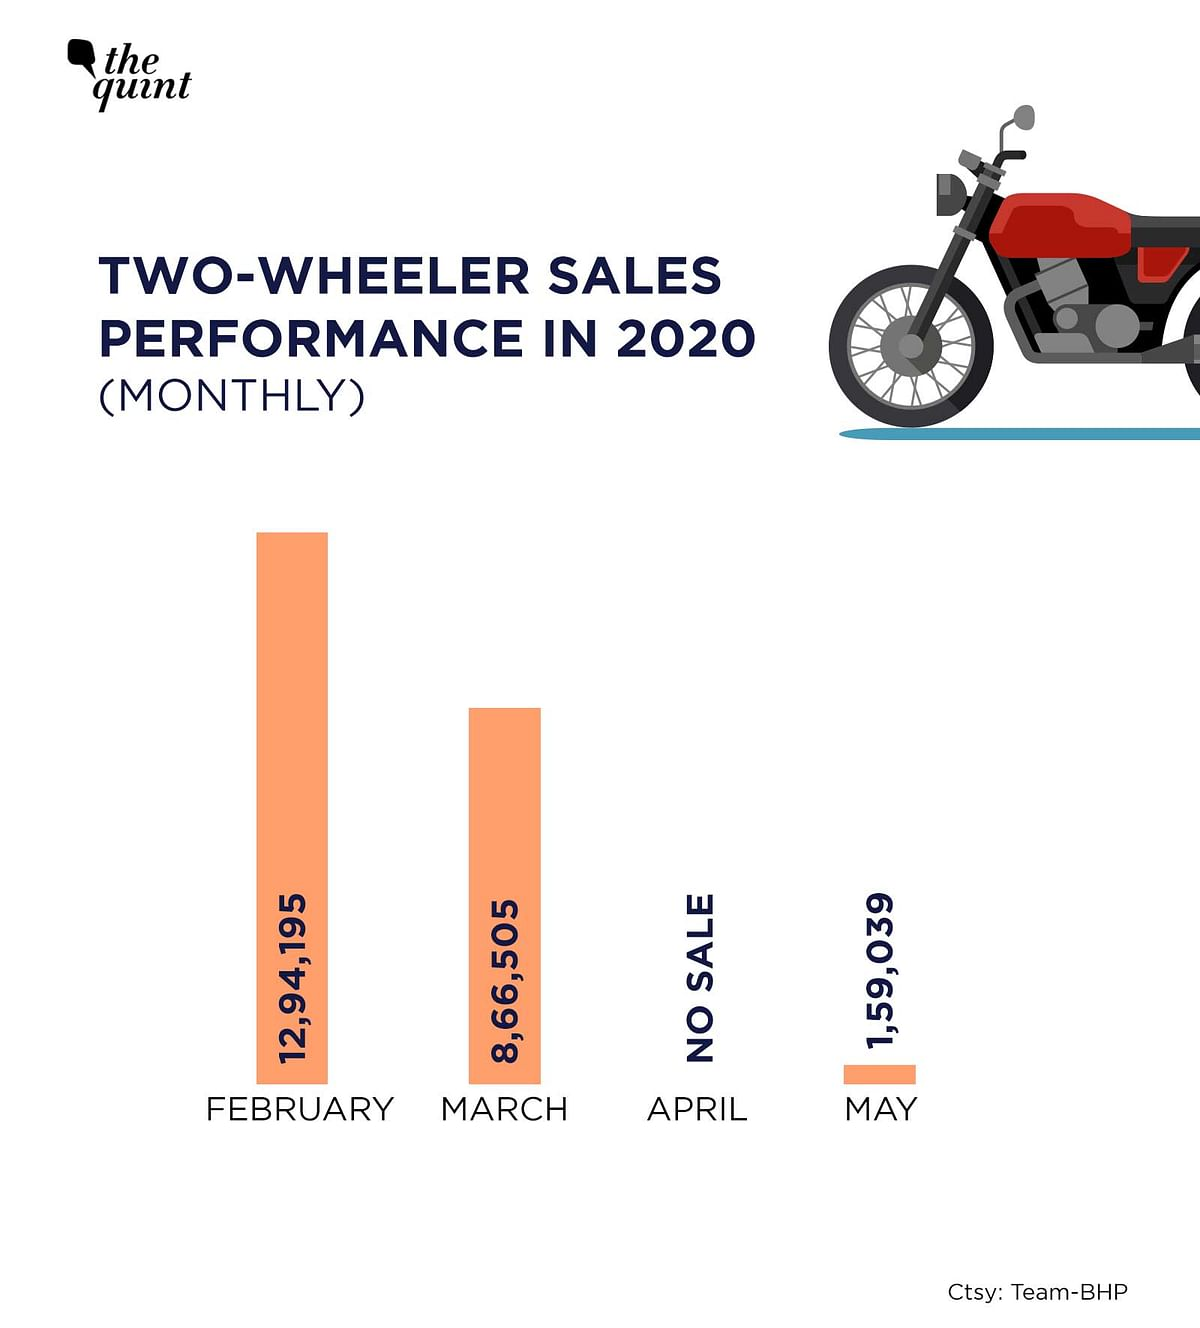 Monthly sales for two-wheelers in India post lockdown.